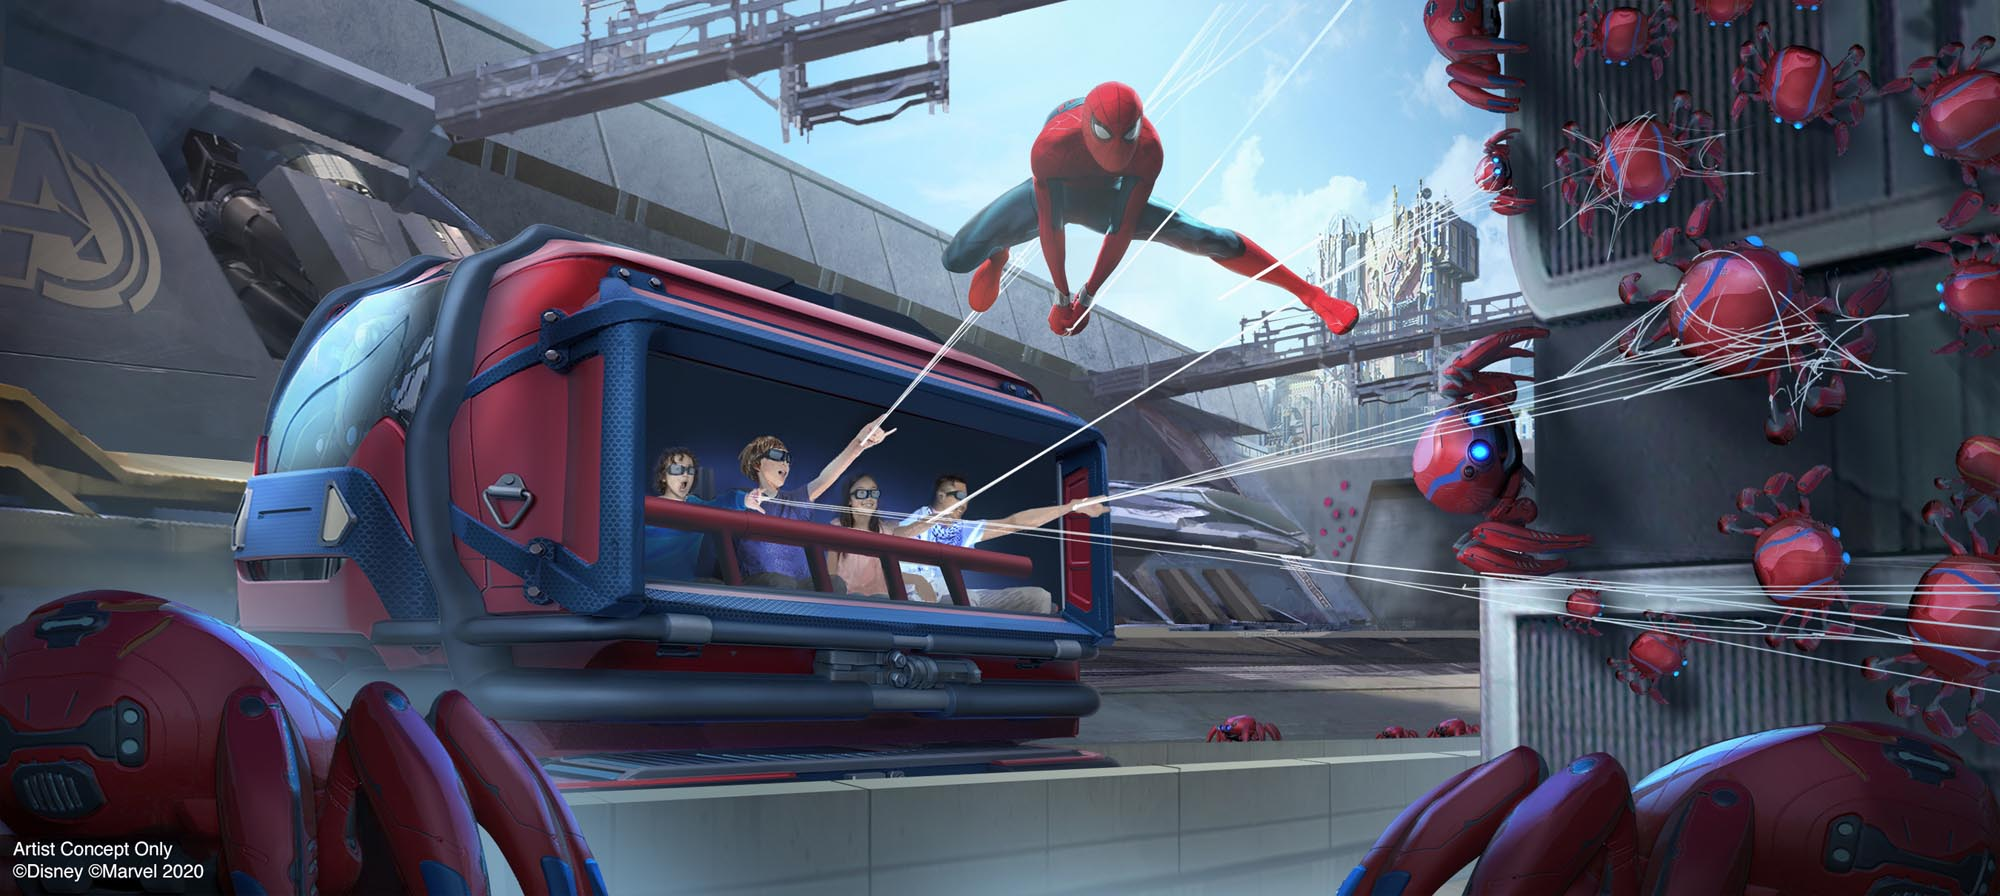 Here's what you'll see at Disneyland's Avengers Campus 16